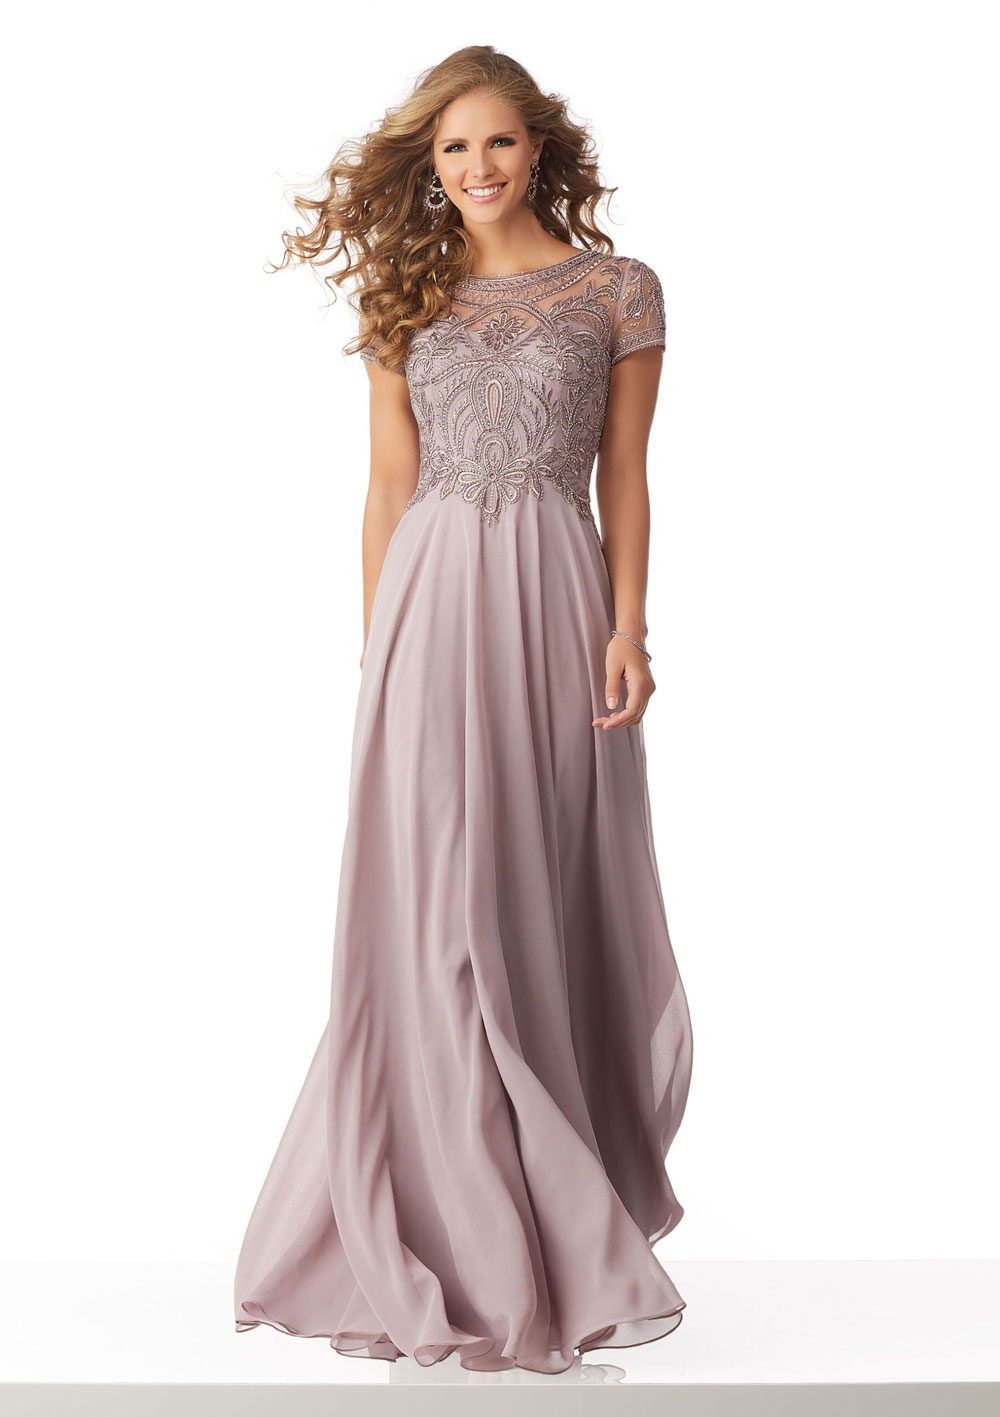 Stunning chiffon evening gown, with illusion back